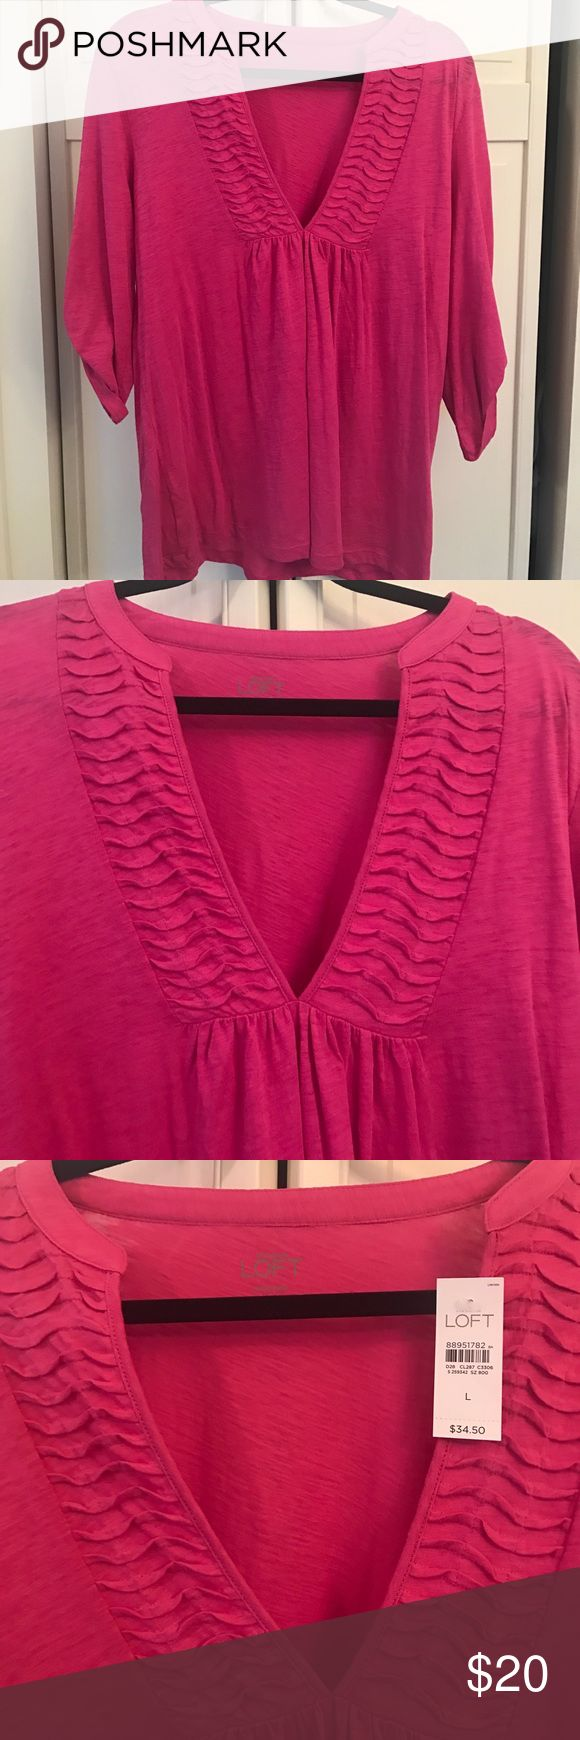 Brand New Anne Taylor LOFT tunic top Brand New Anne Taylor LOFT pink tunic top Size Large anne taylor LOFT Tops Tunics